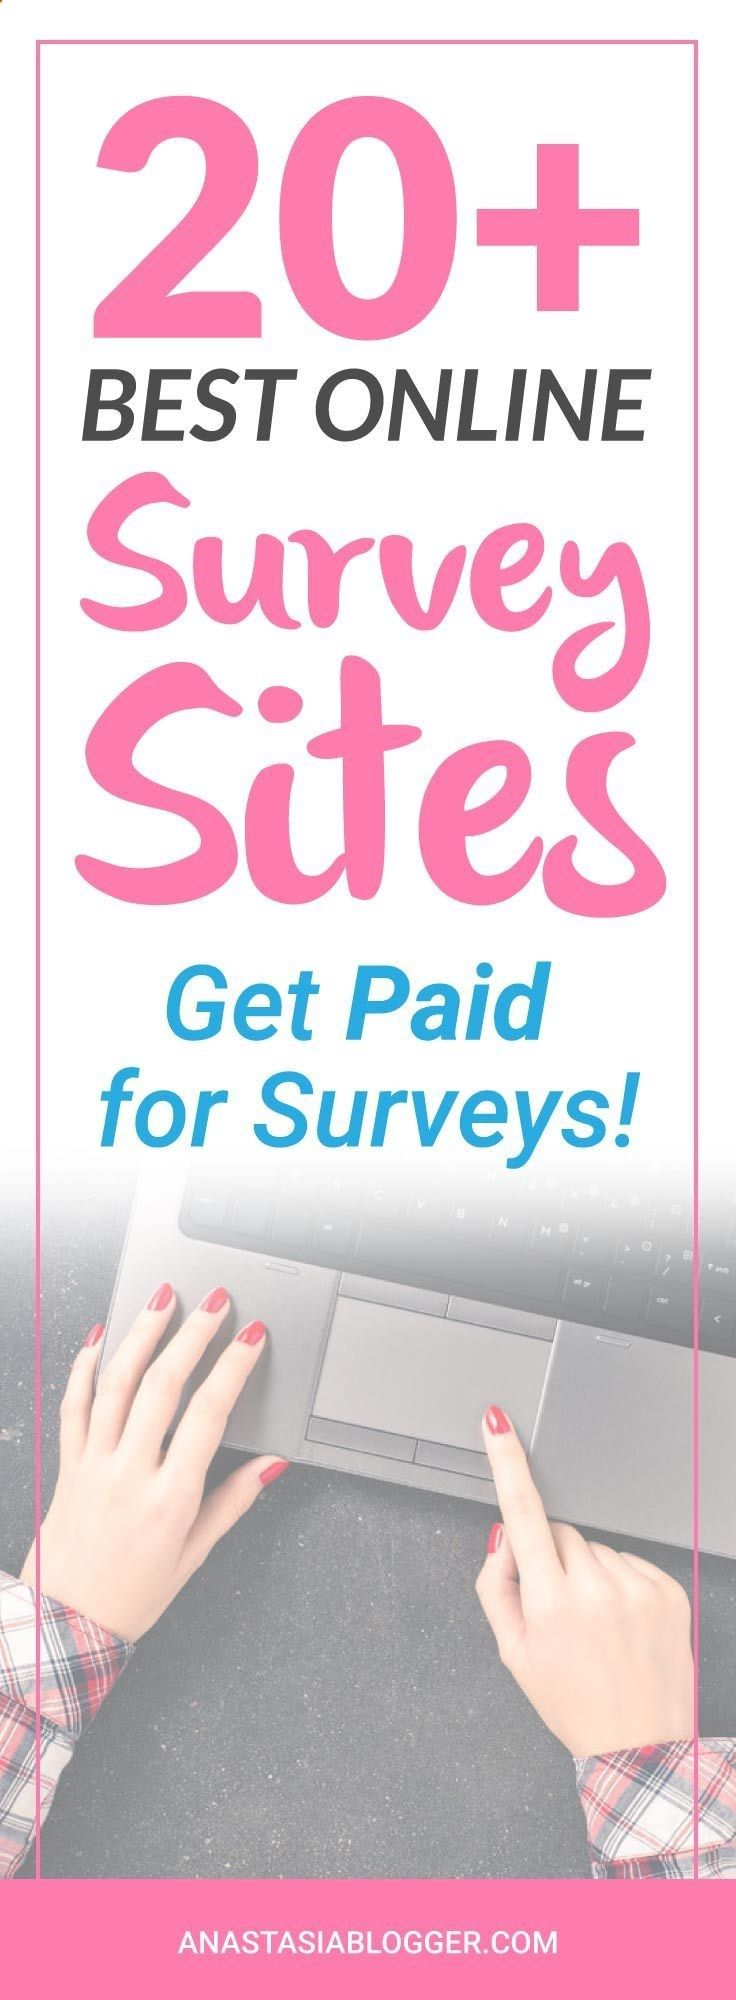 Earn Money From Home Earn Money Online 20 Best Paid Surveys Sites – Get Paid to Take Surveys ! Heres Your Opportunity To CLONE My Entire Proven Internet Business System Today! You may have signed up to take paid surveys in the past and didn't make any money because you didn't know the correct way to get started!